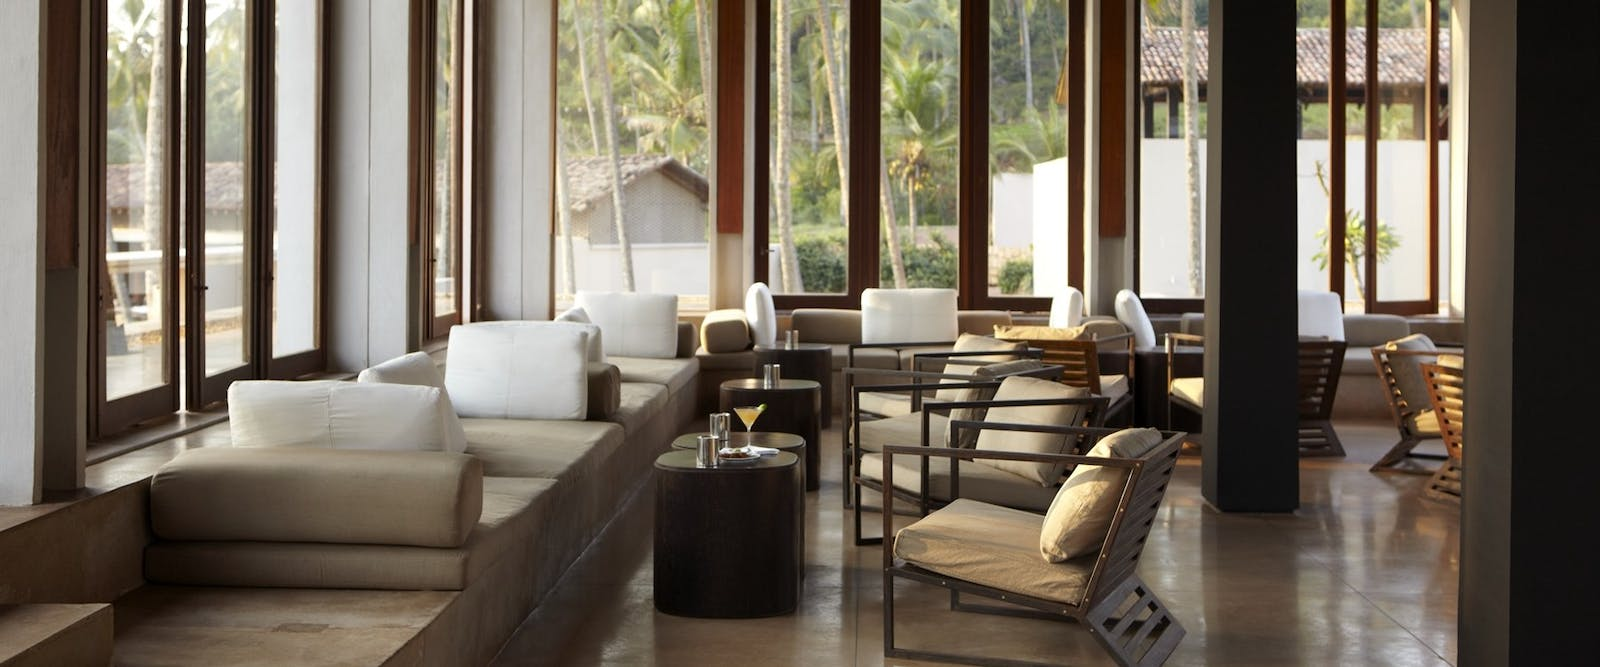 Lounge Bar at Amanwella, Sri Lanka